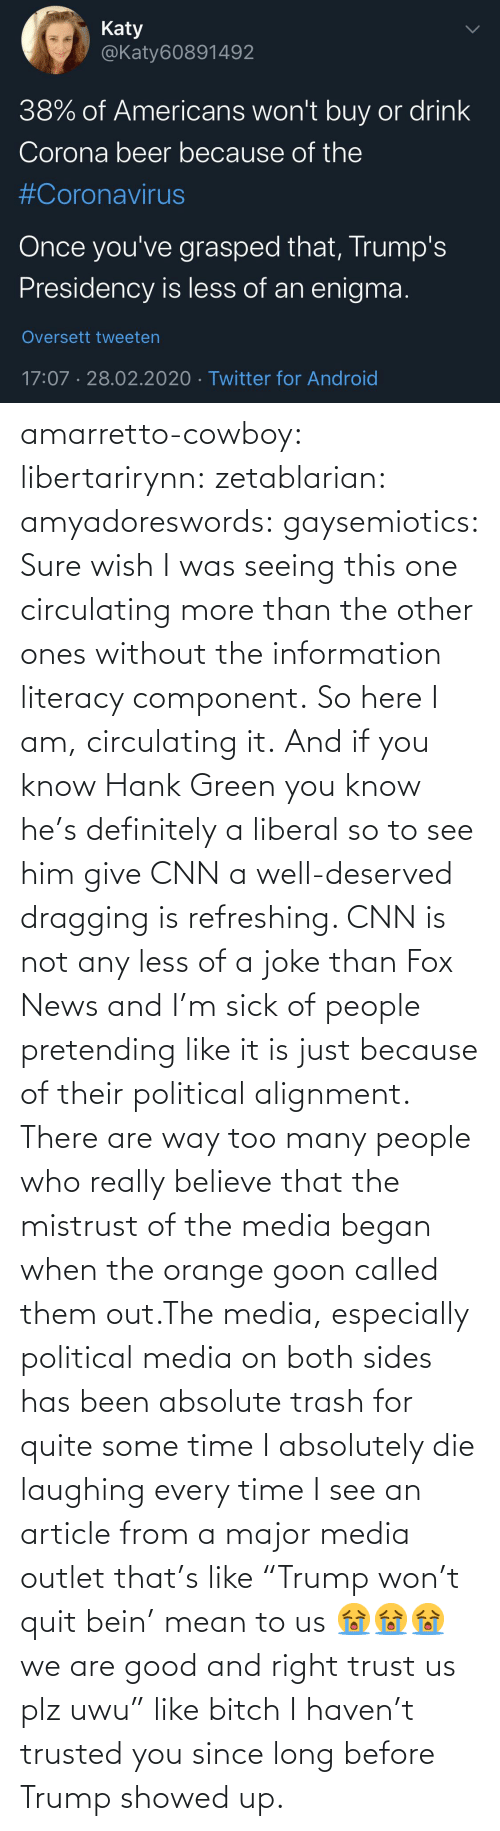 "Showed: amarretto-cowboy:  libertarirynn:  zetablarian:  amyadoreswords:   gaysemiotics:       Sure wish I was seeing this one circulating more than the other ones without the information literacy component. So here I am, circulating it.    And if you know Hank Green you know he's definitely a liberal so to see him give CNN a well-deserved dragging is refreshing. CNN is not any less of a joke than Fox News and I'm sick of people pretending like it is just because of their political alignment.   There are way too many people who really believe that the mistrust of the media began when the orange goon called them out.The media, especially political media on both sides has been absolute trash for quite some time   I absolutely die laughing every time I see an article from a major media outlet that's like ""Trump won't quit bein' mean to us 😭😭😭 we are good and right trust us plz uwu"" like bitch I haven't trusted you since long before Trump showed up."